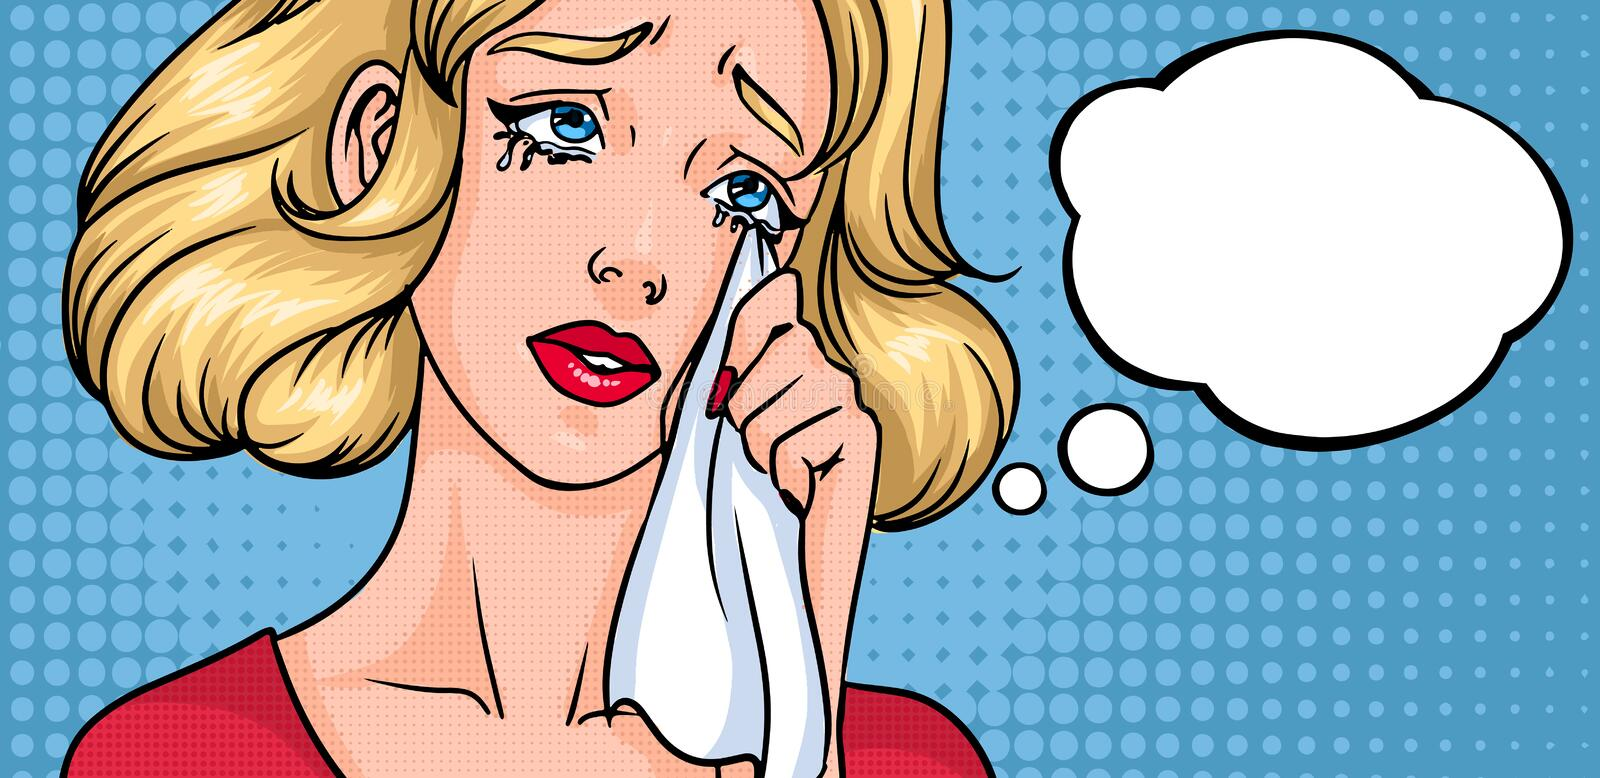 Crying woman face. Sad girl, horizontal background with place for text. Empty blank speech bubble. Colorful comics. Vector illustration in pop art style royalty free illustration